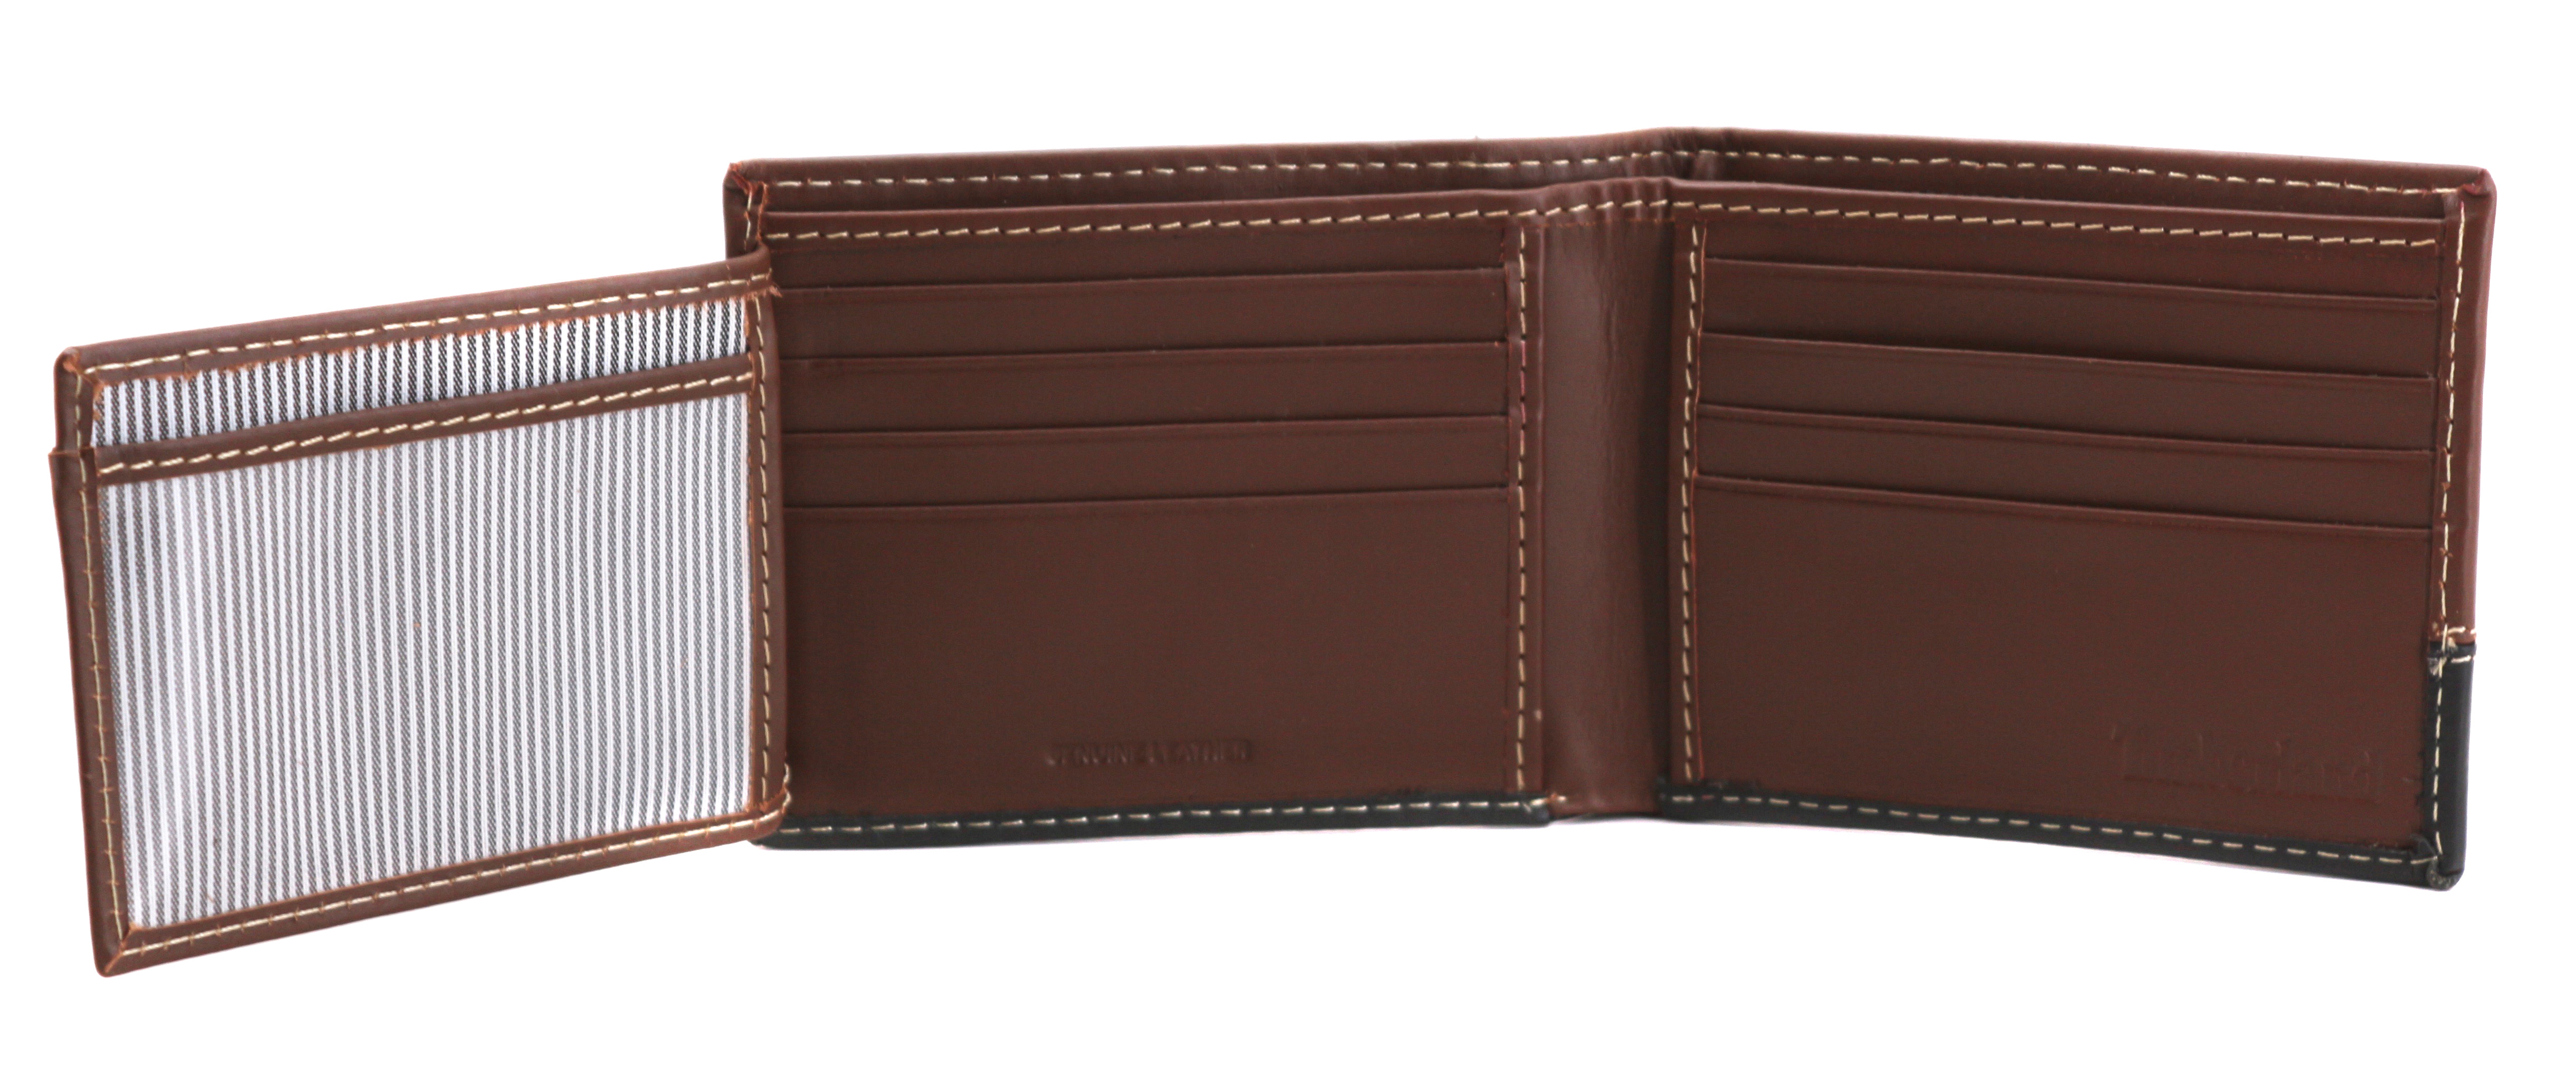 Timberland-Men-039-s-Genuine-Two-Tone-Leather-Credit-Card-Billfold-Commuter-Wallet thumbnail 32